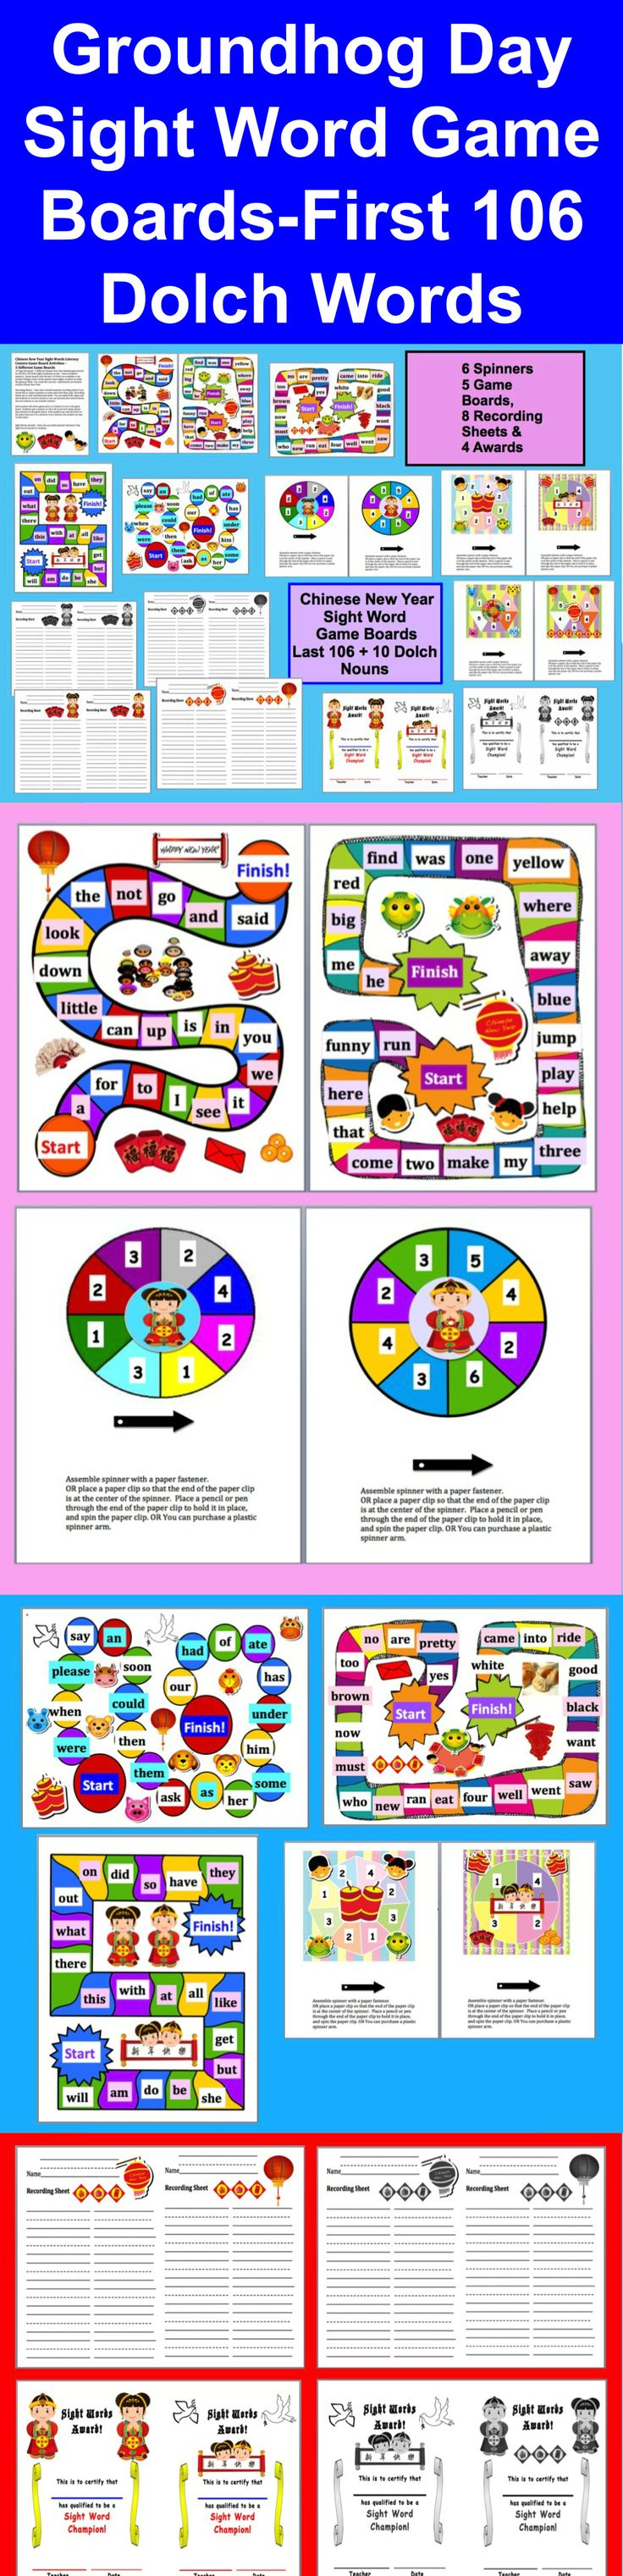 Worksheet 50 Sight Words worksheet 50 sight words mikyu free high frequency images guru groundhog day words